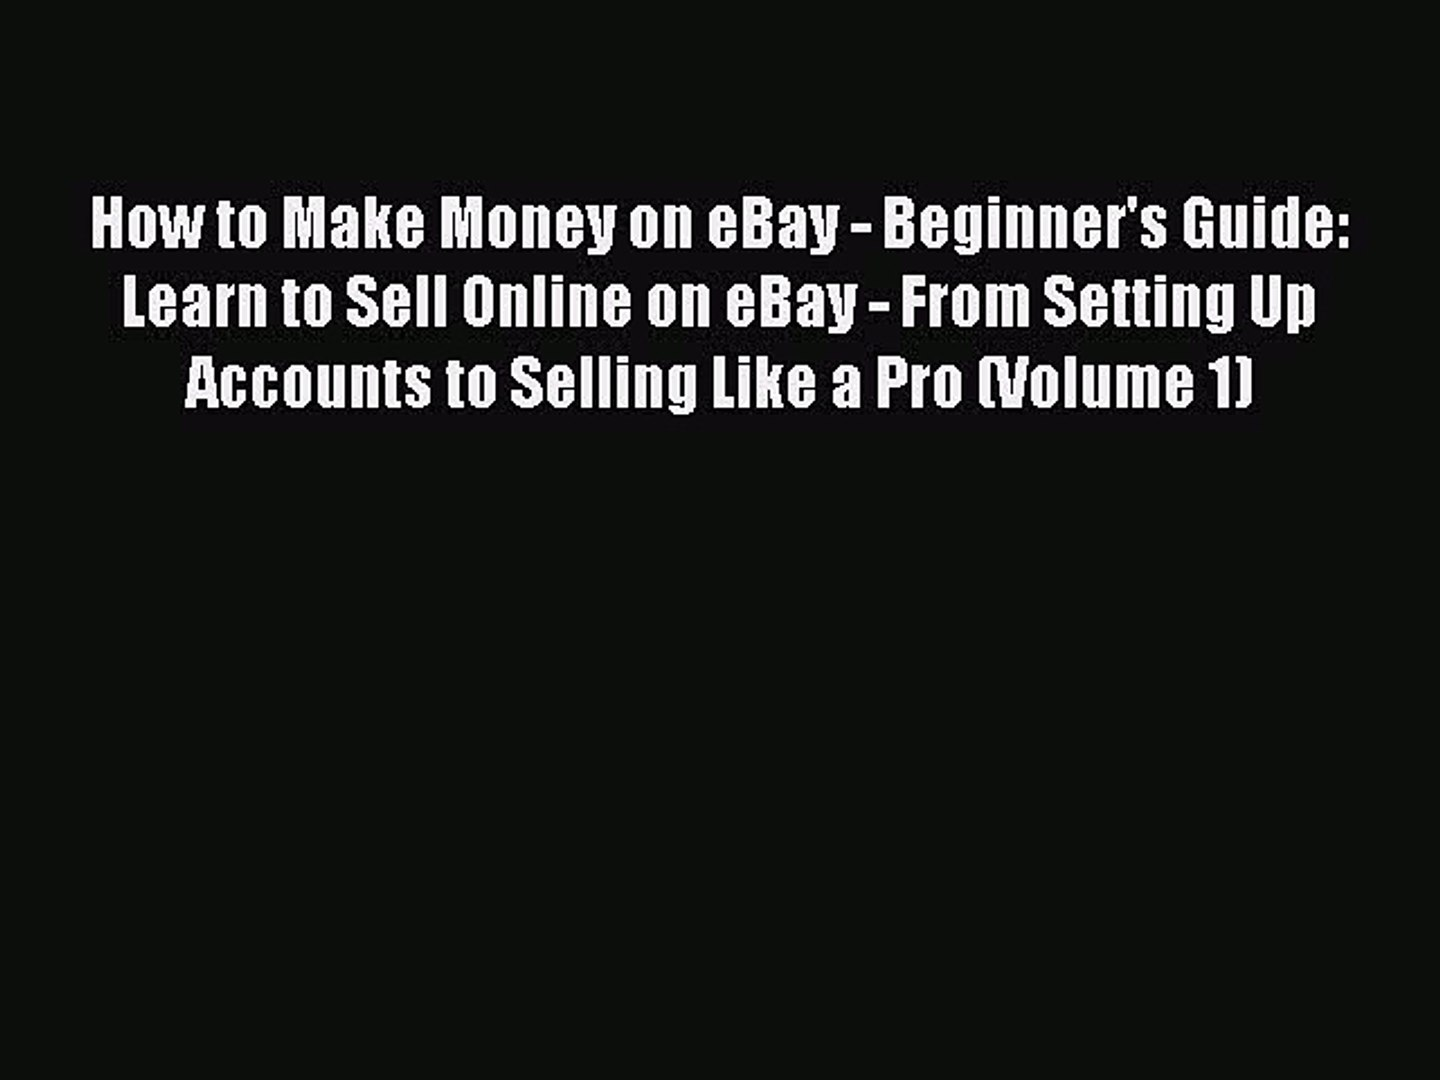 Online Pdf How To Make Money On Ebay Beginner S Guide Learn To Sell Online On Ebay From Video Dailymotion